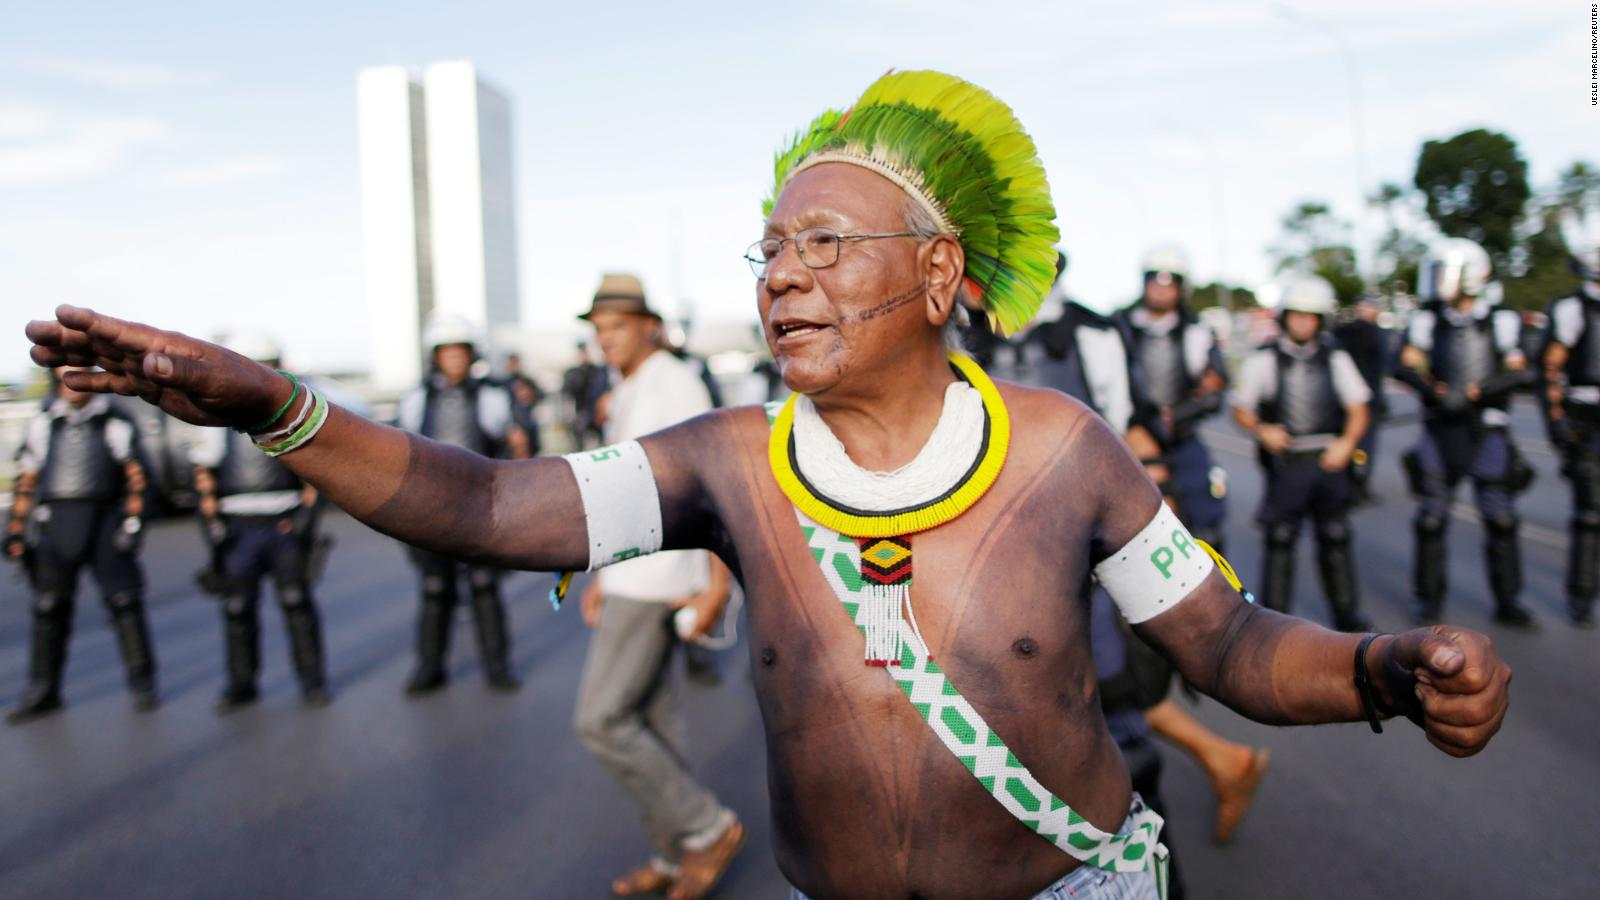 Indigenous leader Paulinho Paiakan of the Kayapo community takes part in a demonstration for indigenous people's rights in Brasilia, Brazil, in April 2017.